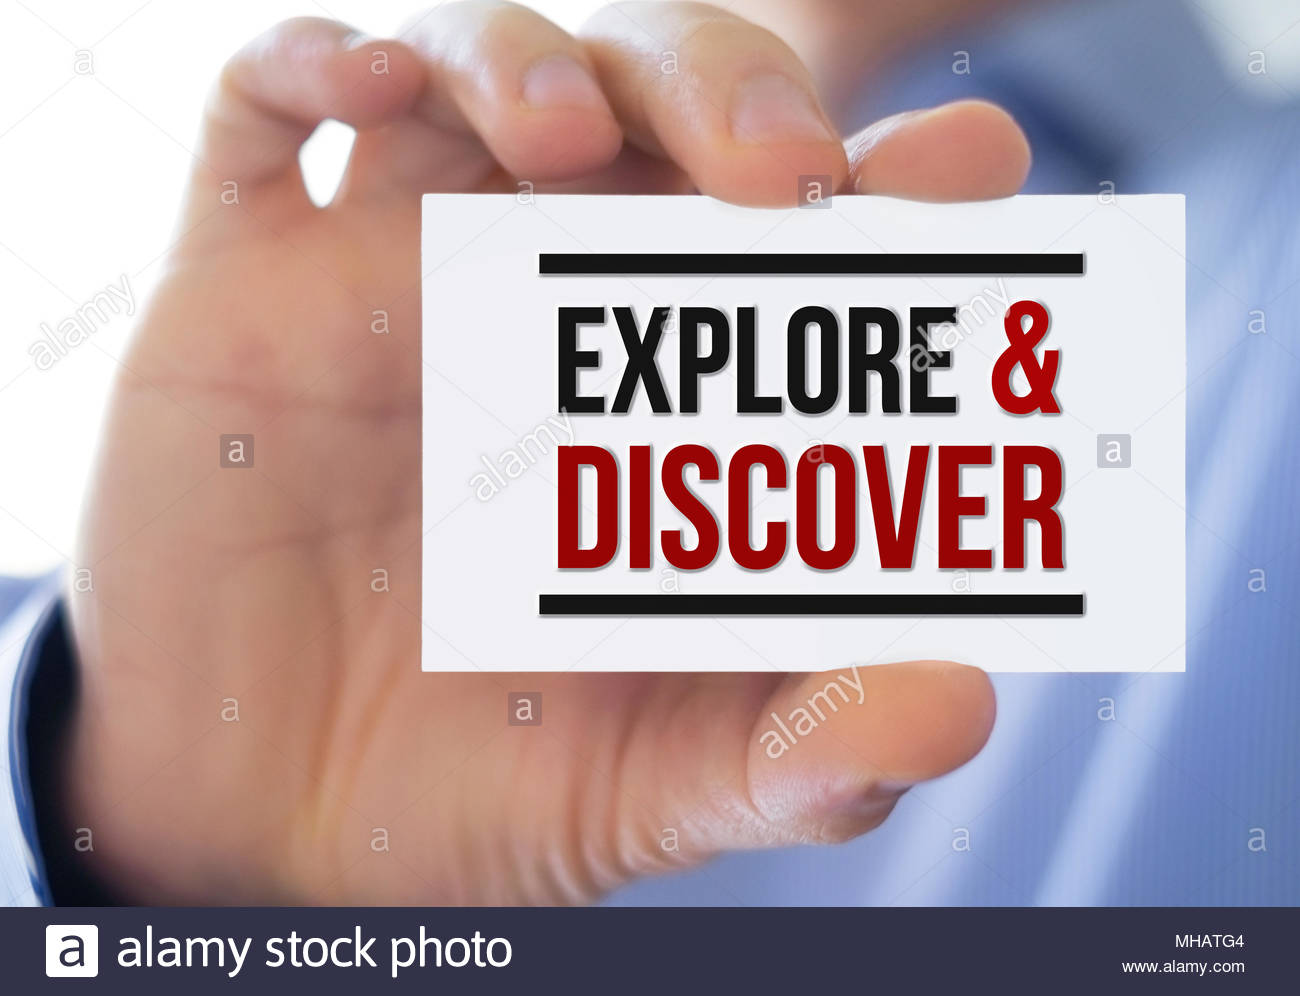 Explore and Discover - Stock Image